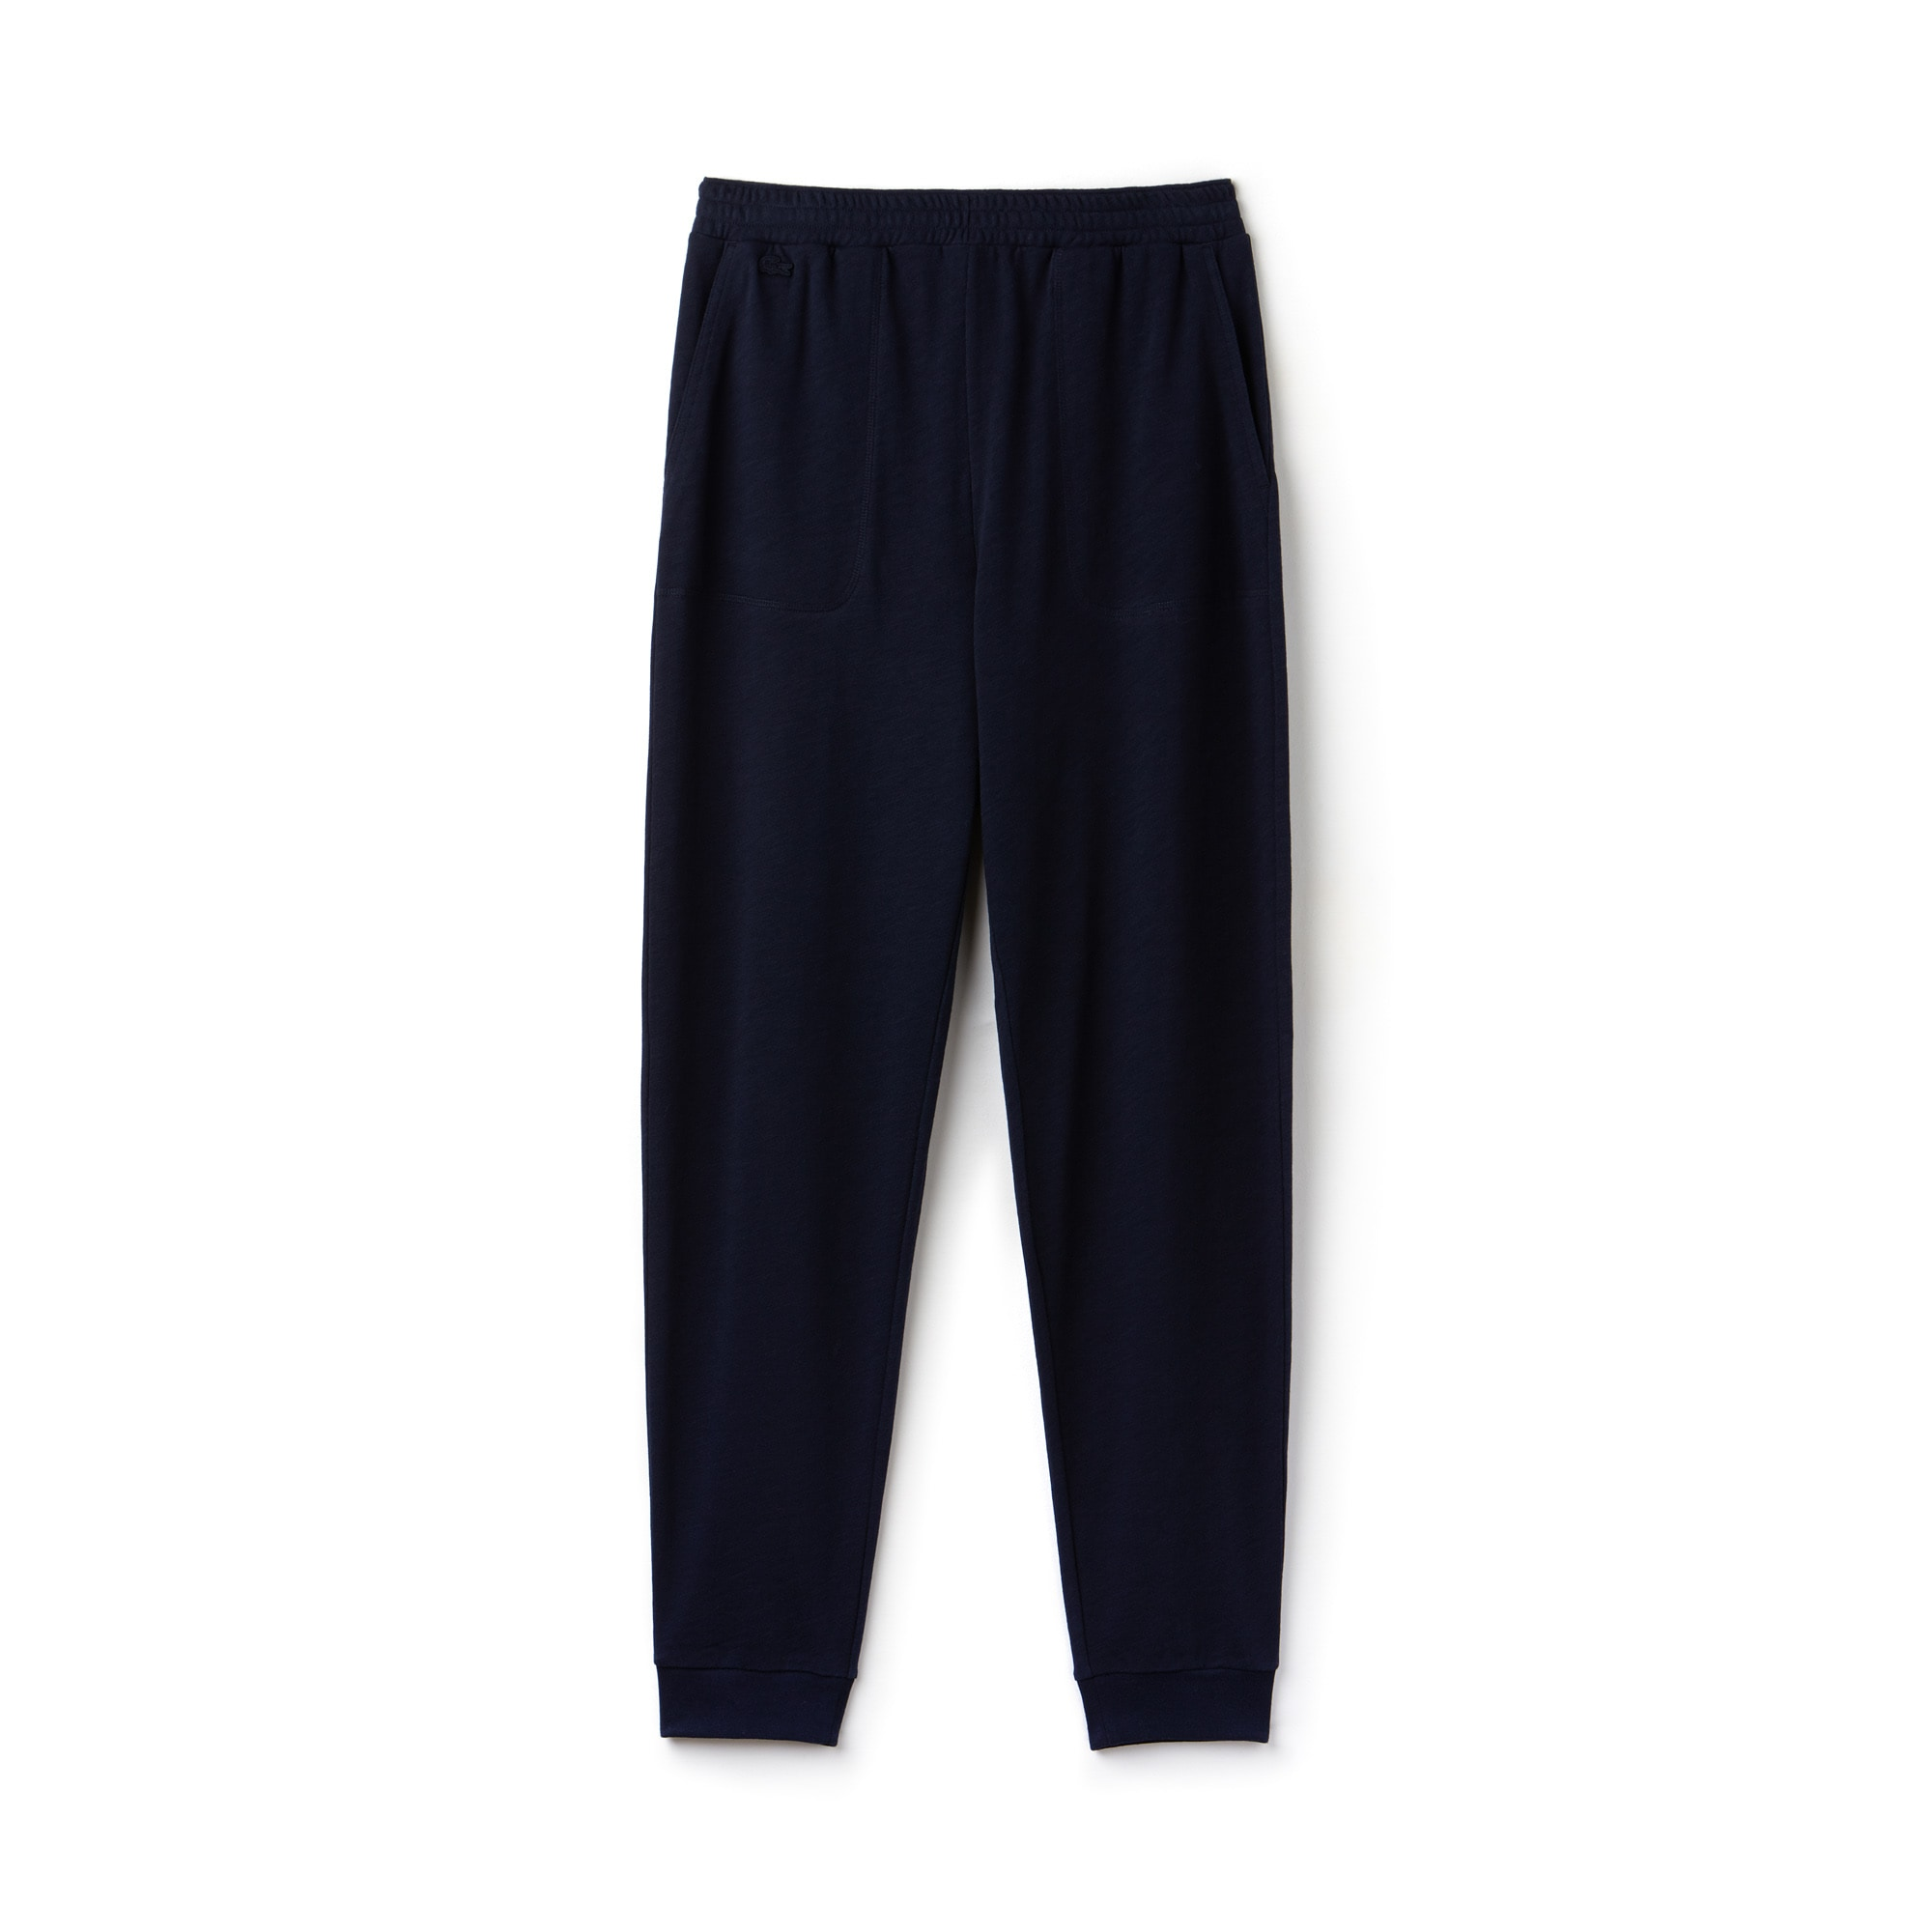 Men's MOTION Urban Jogging Pants